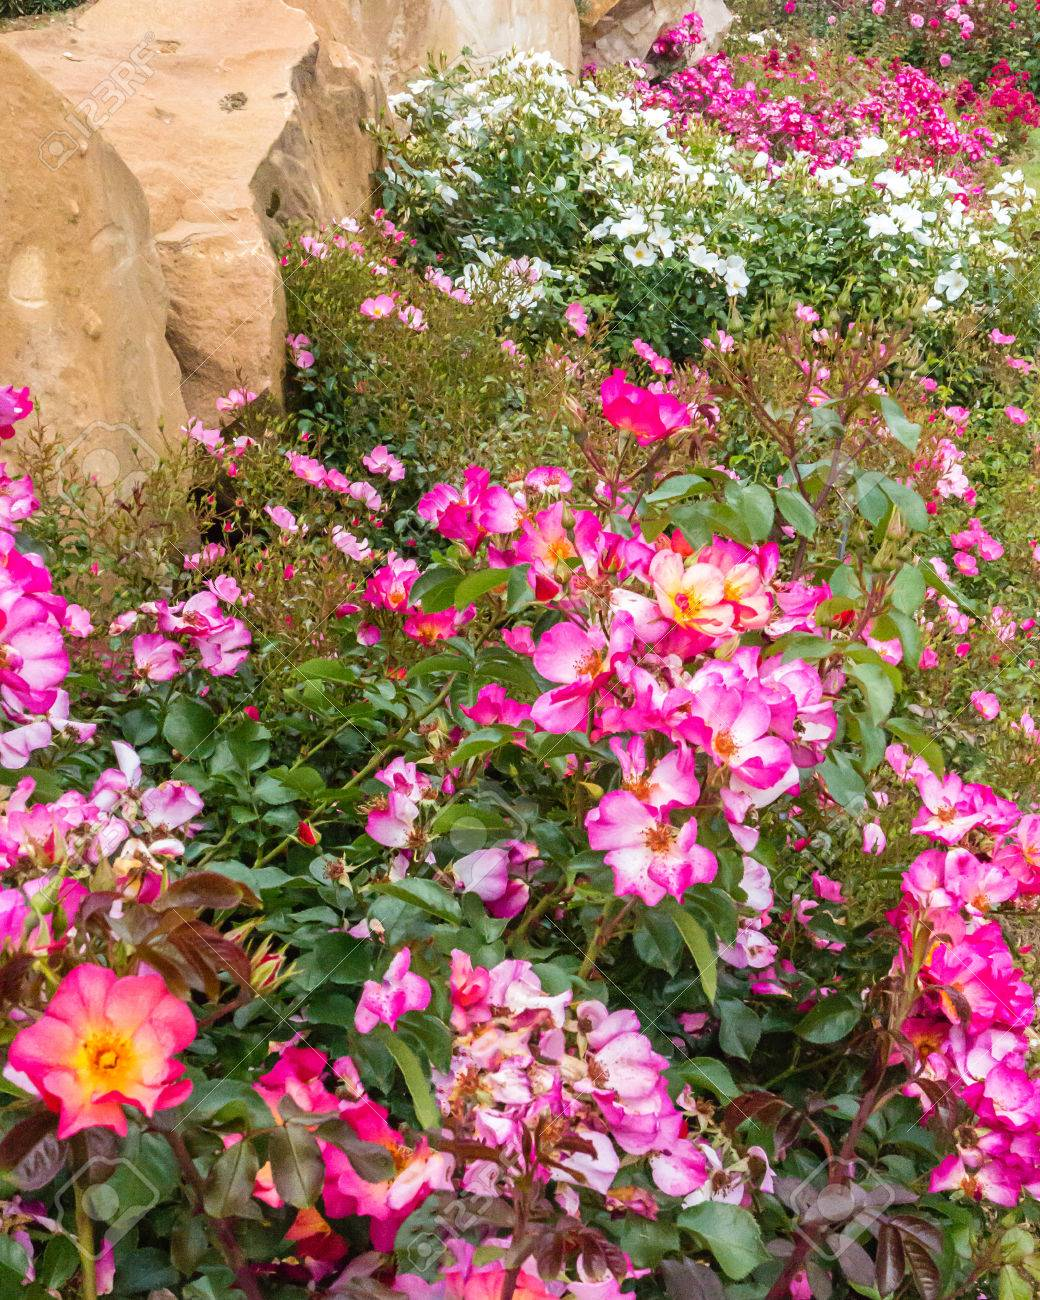 Carpet Of Pink And White Dwarf Roses In A Rose Garden Stock Photo